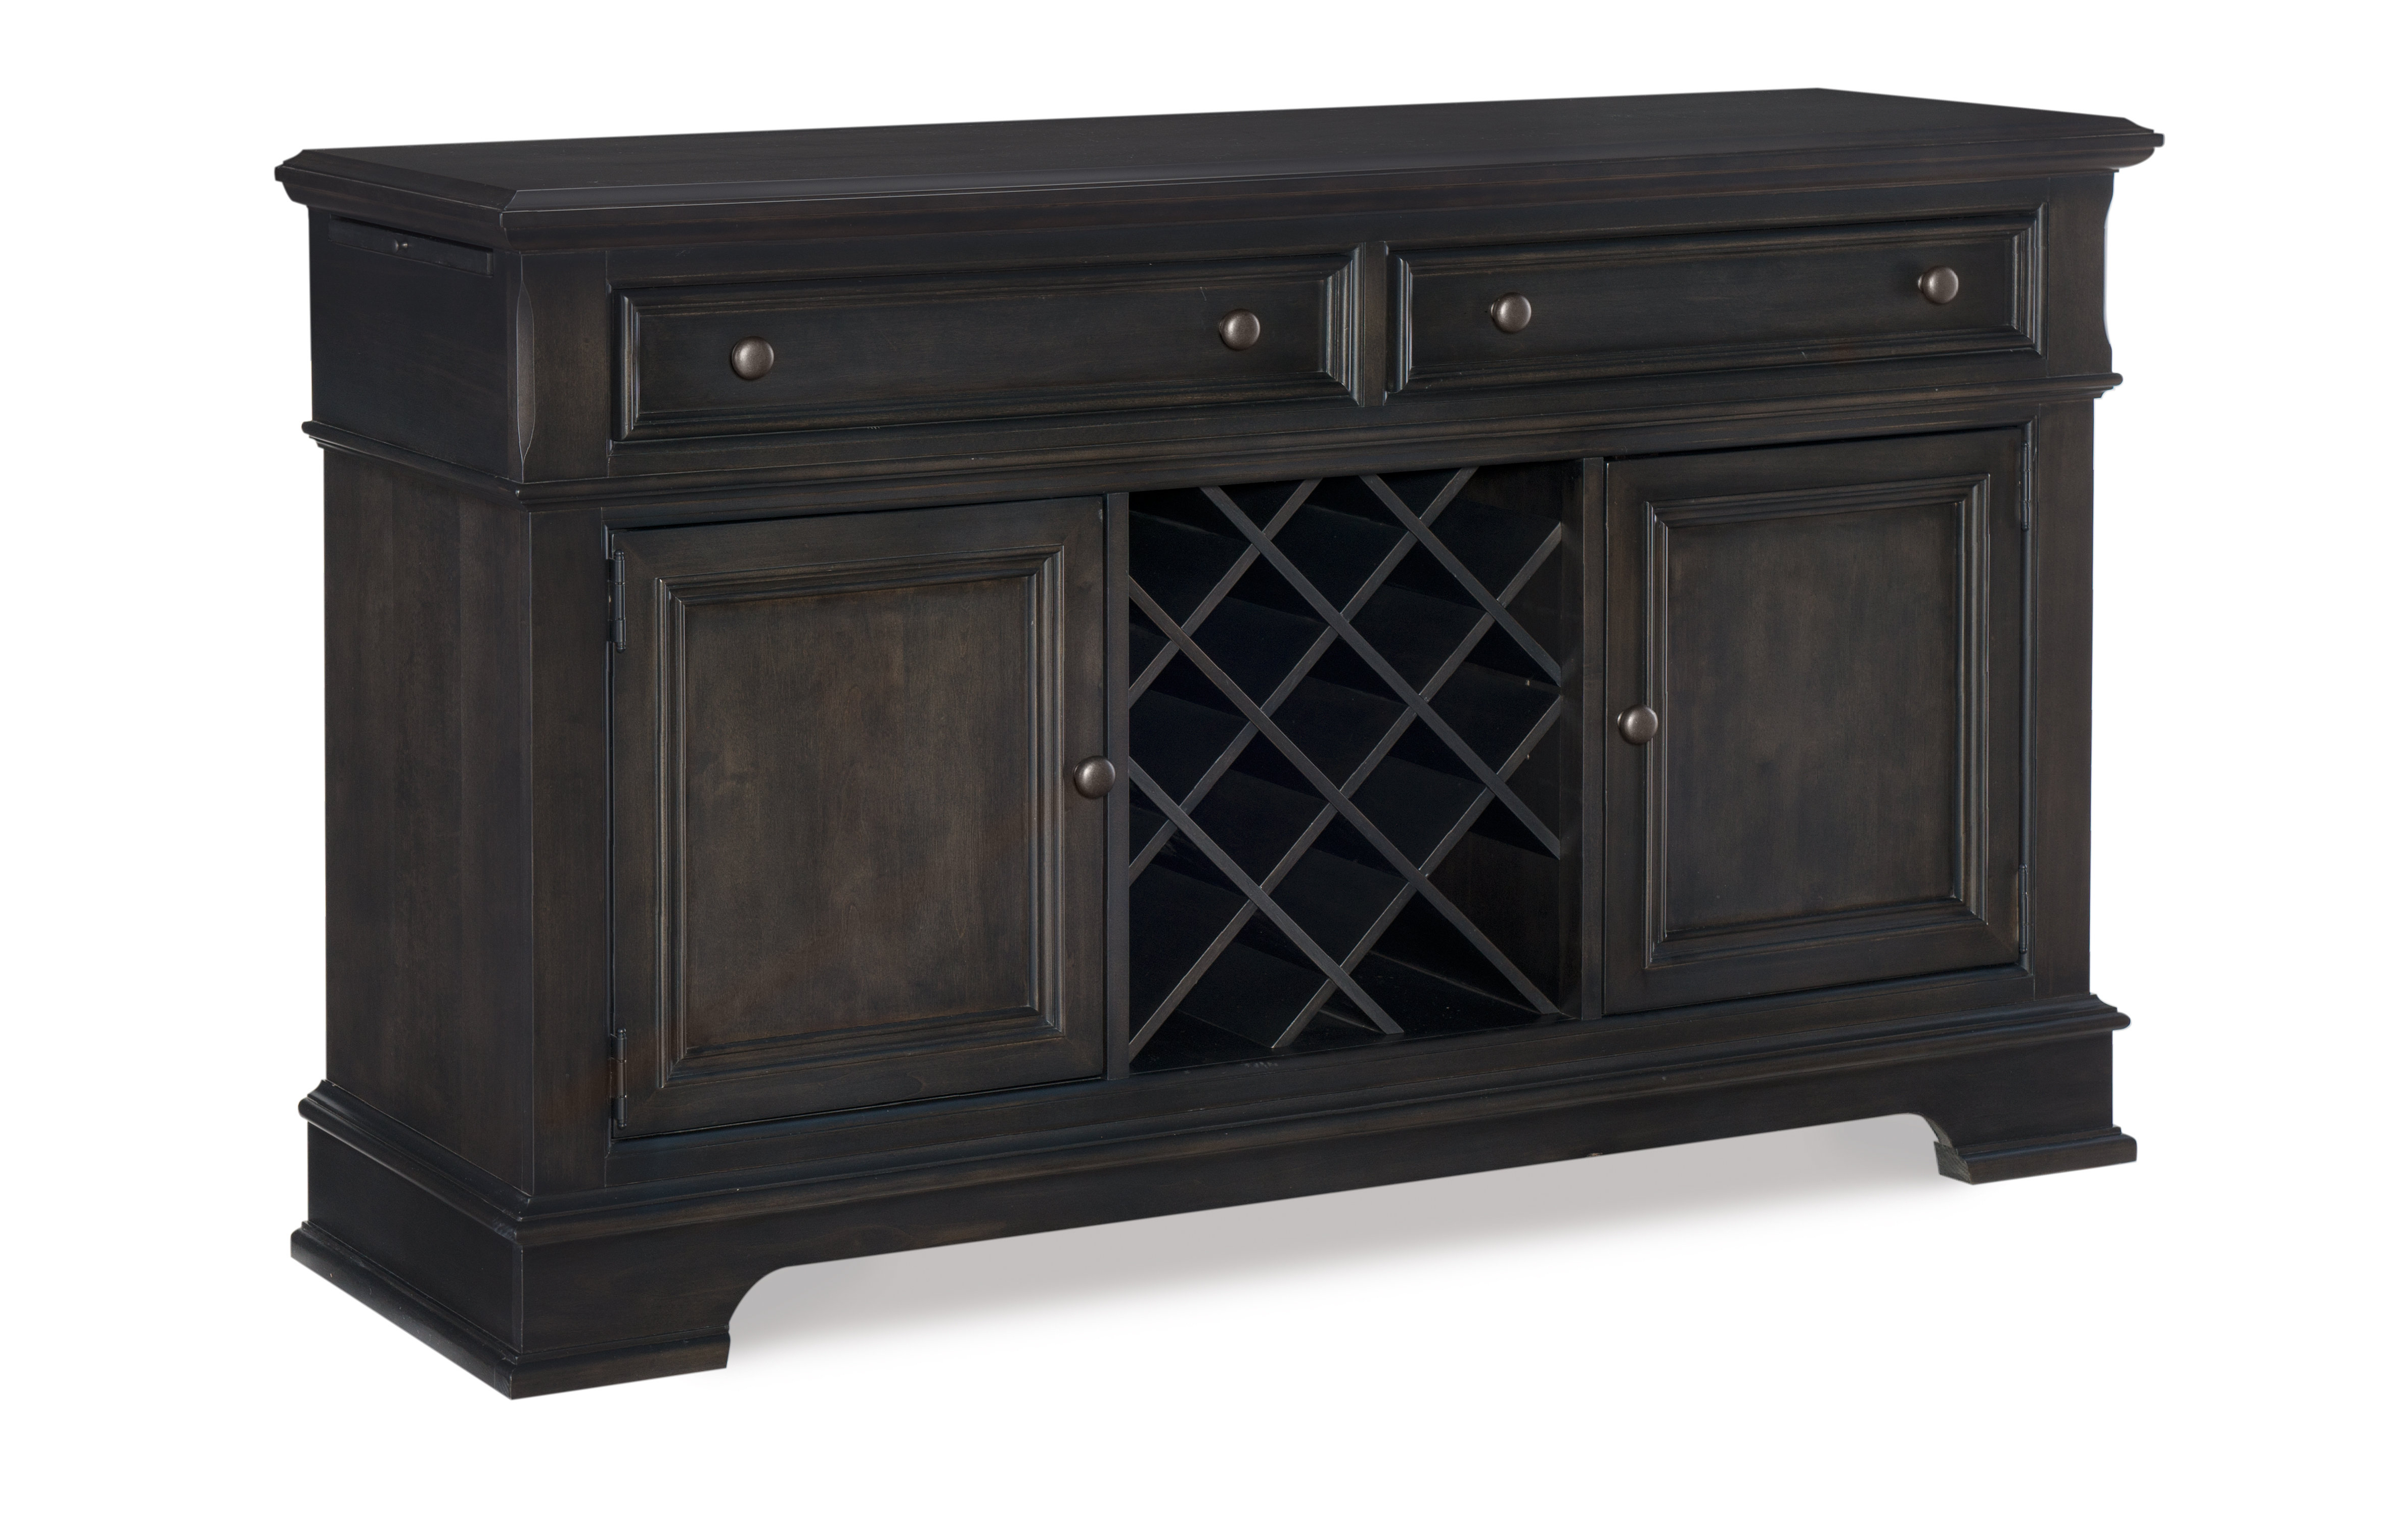 Earley Credenza Throughout Well Known Adelbert Credenzas (View 9 of 20)